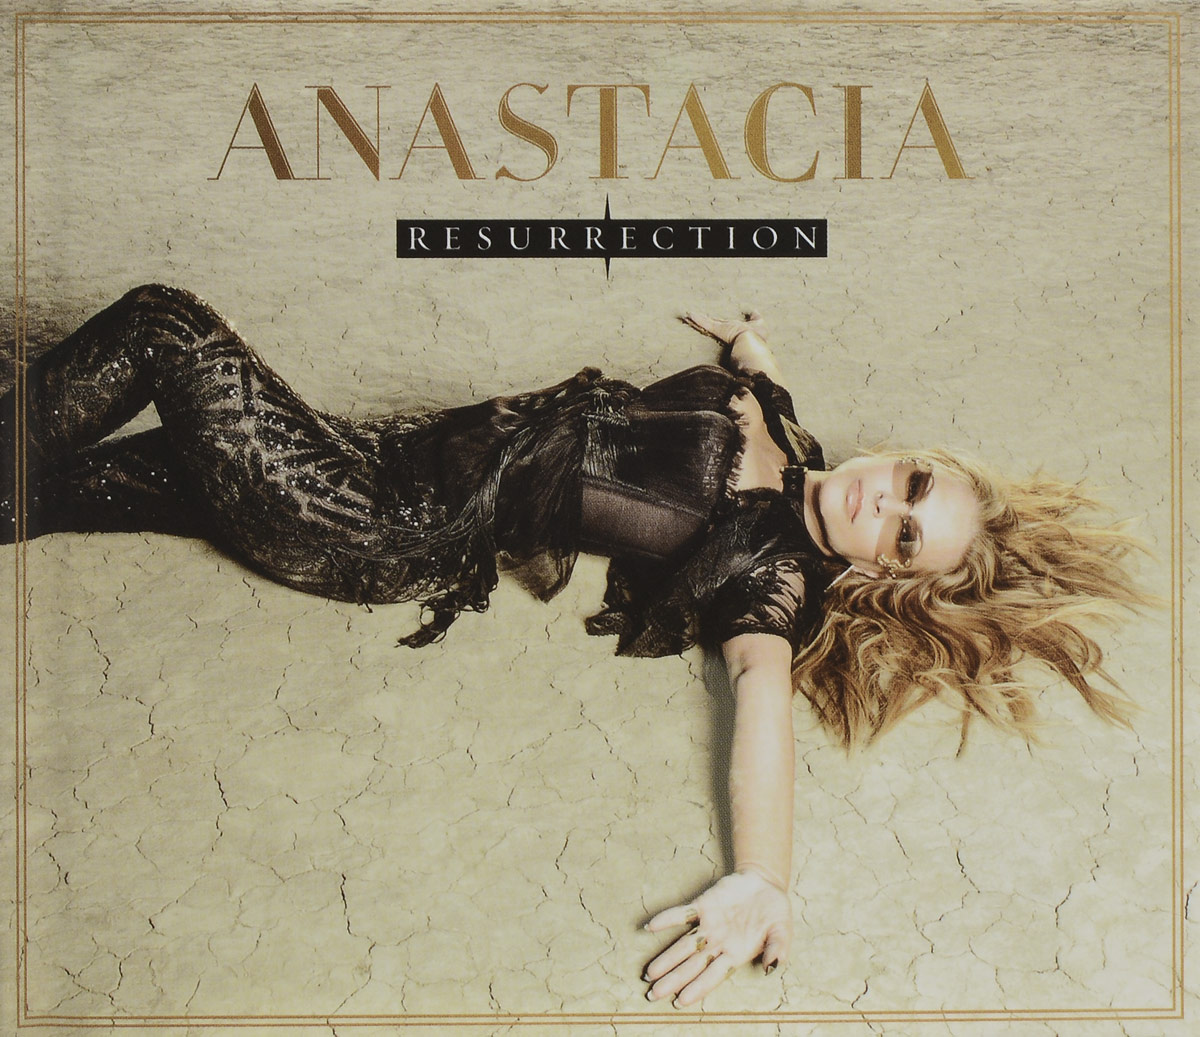 Анастасия Азеведо Anastacia. Resurrection (2 CD)